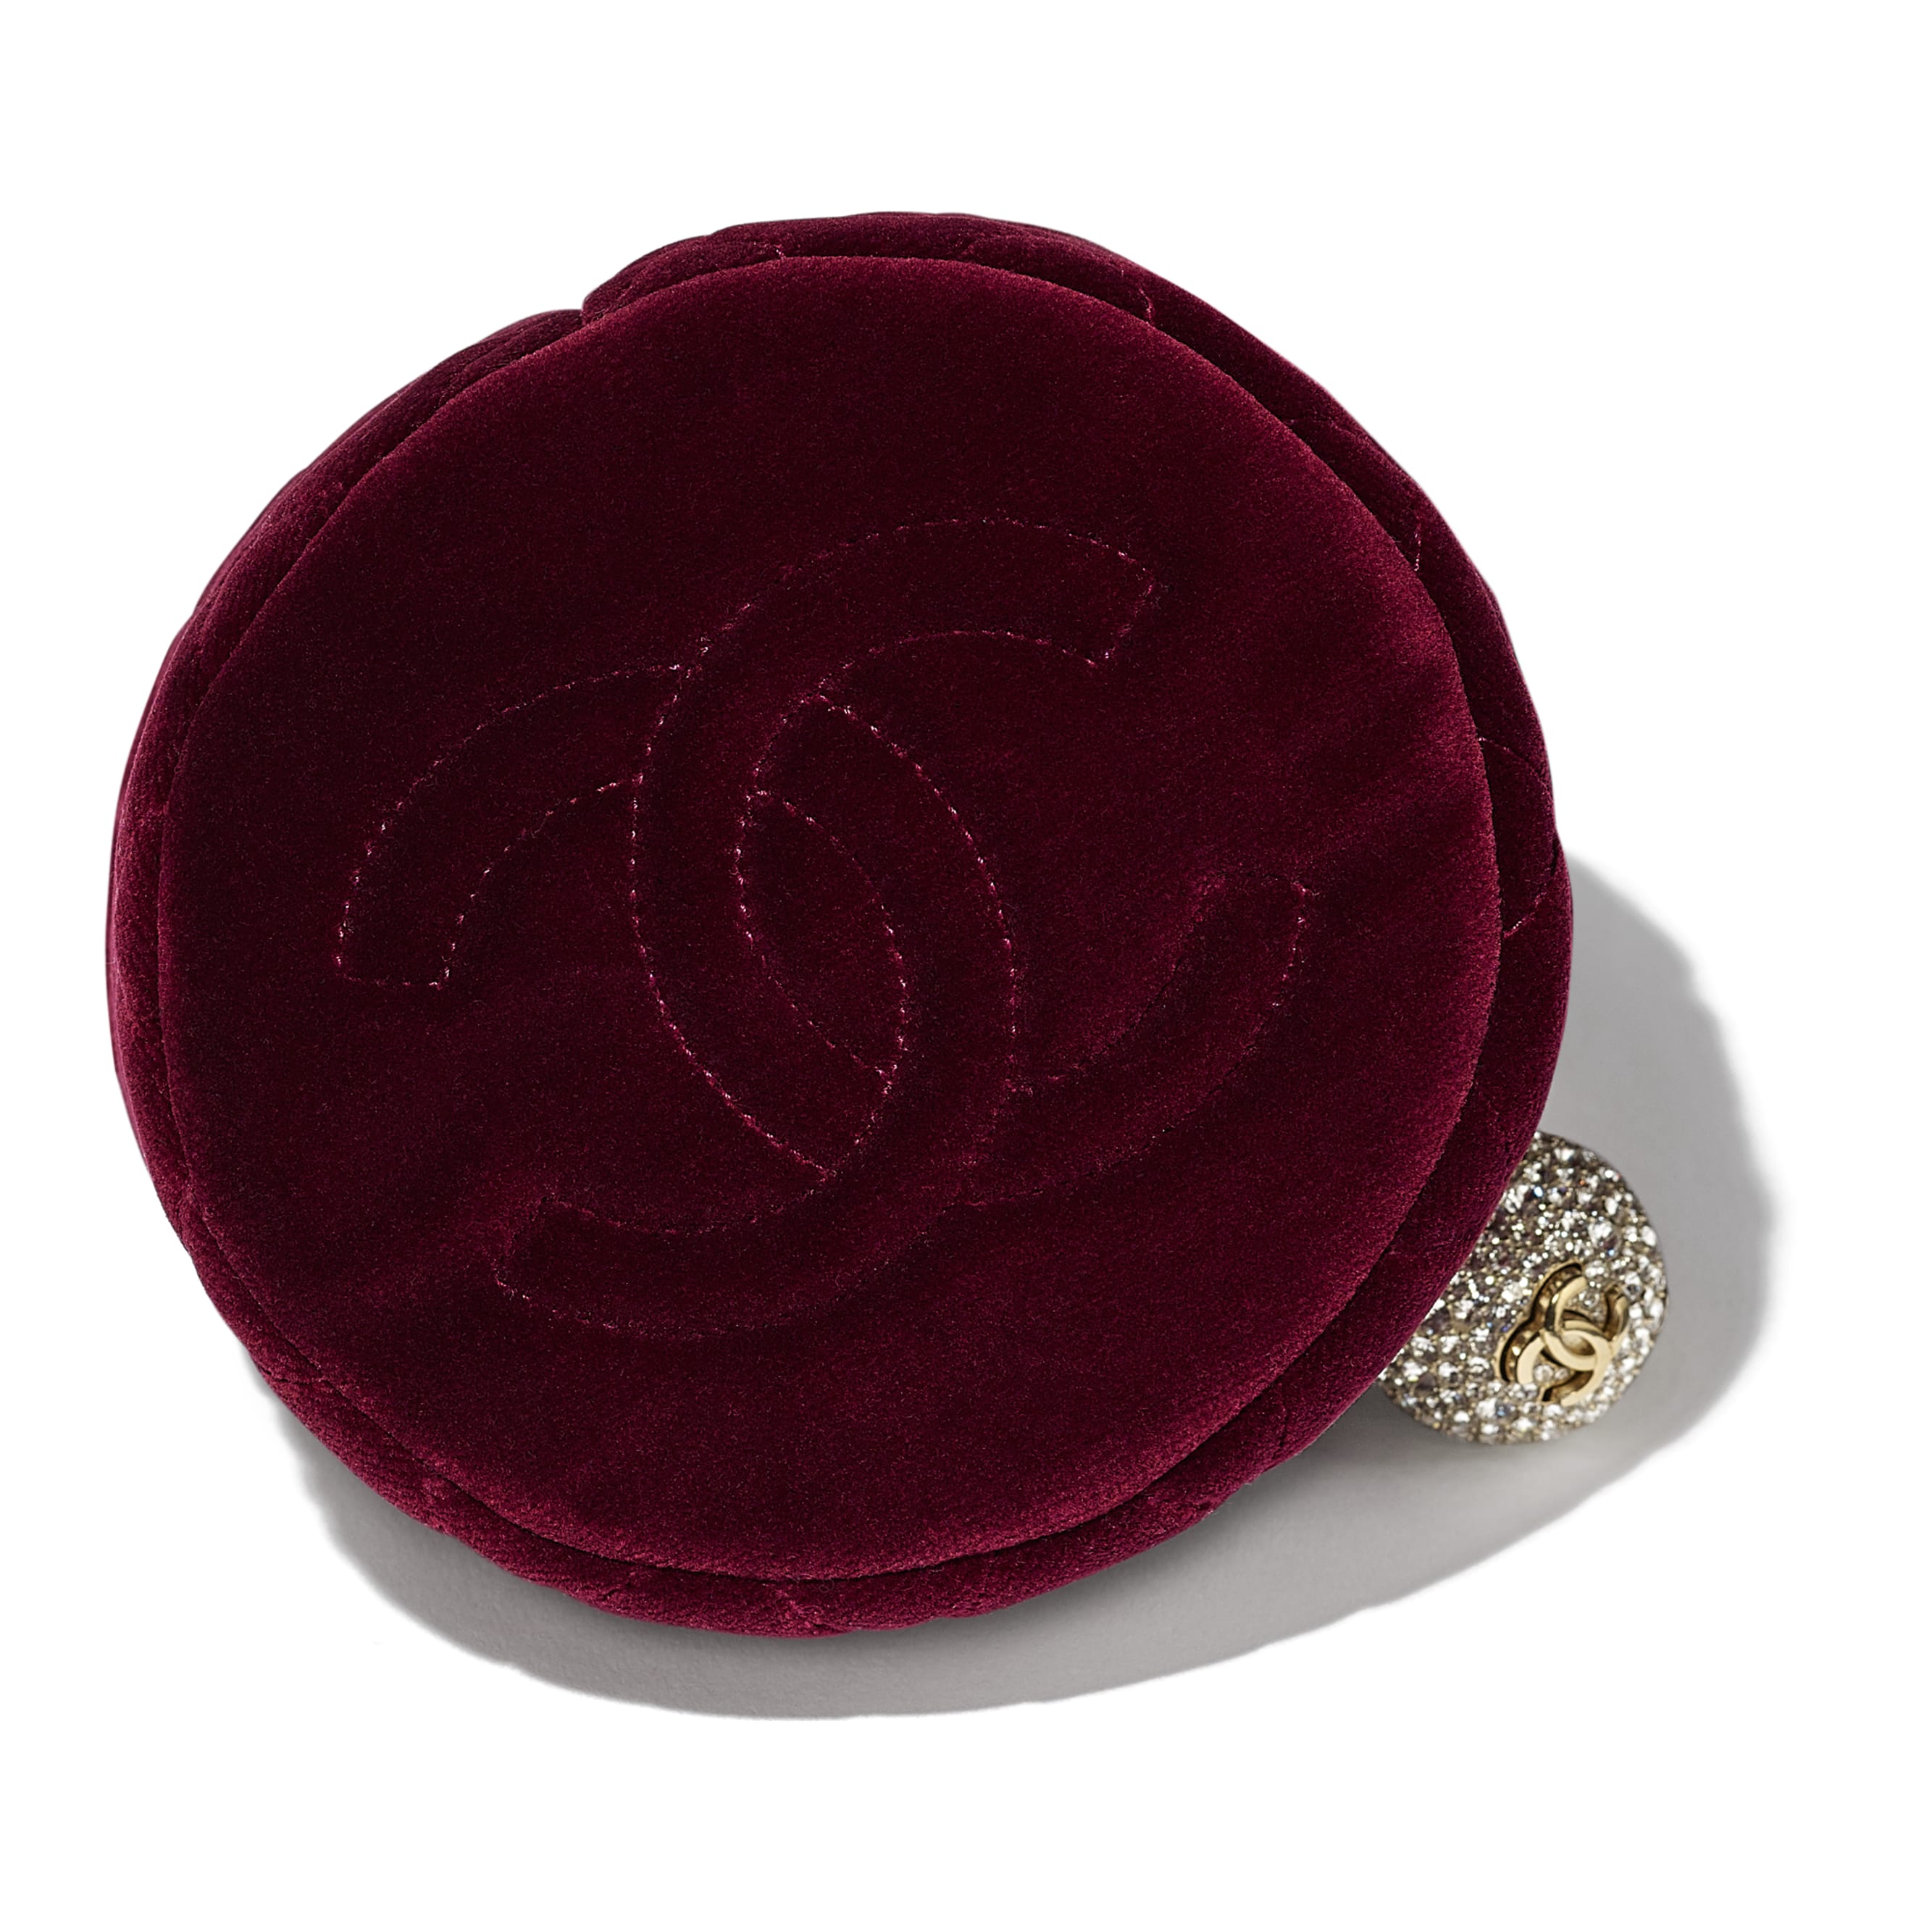 Drawstring Bag - Burgundy - Velvet, Diamanté & Silver-Tone Metal - CHANEL - Extra view - see standard sized version